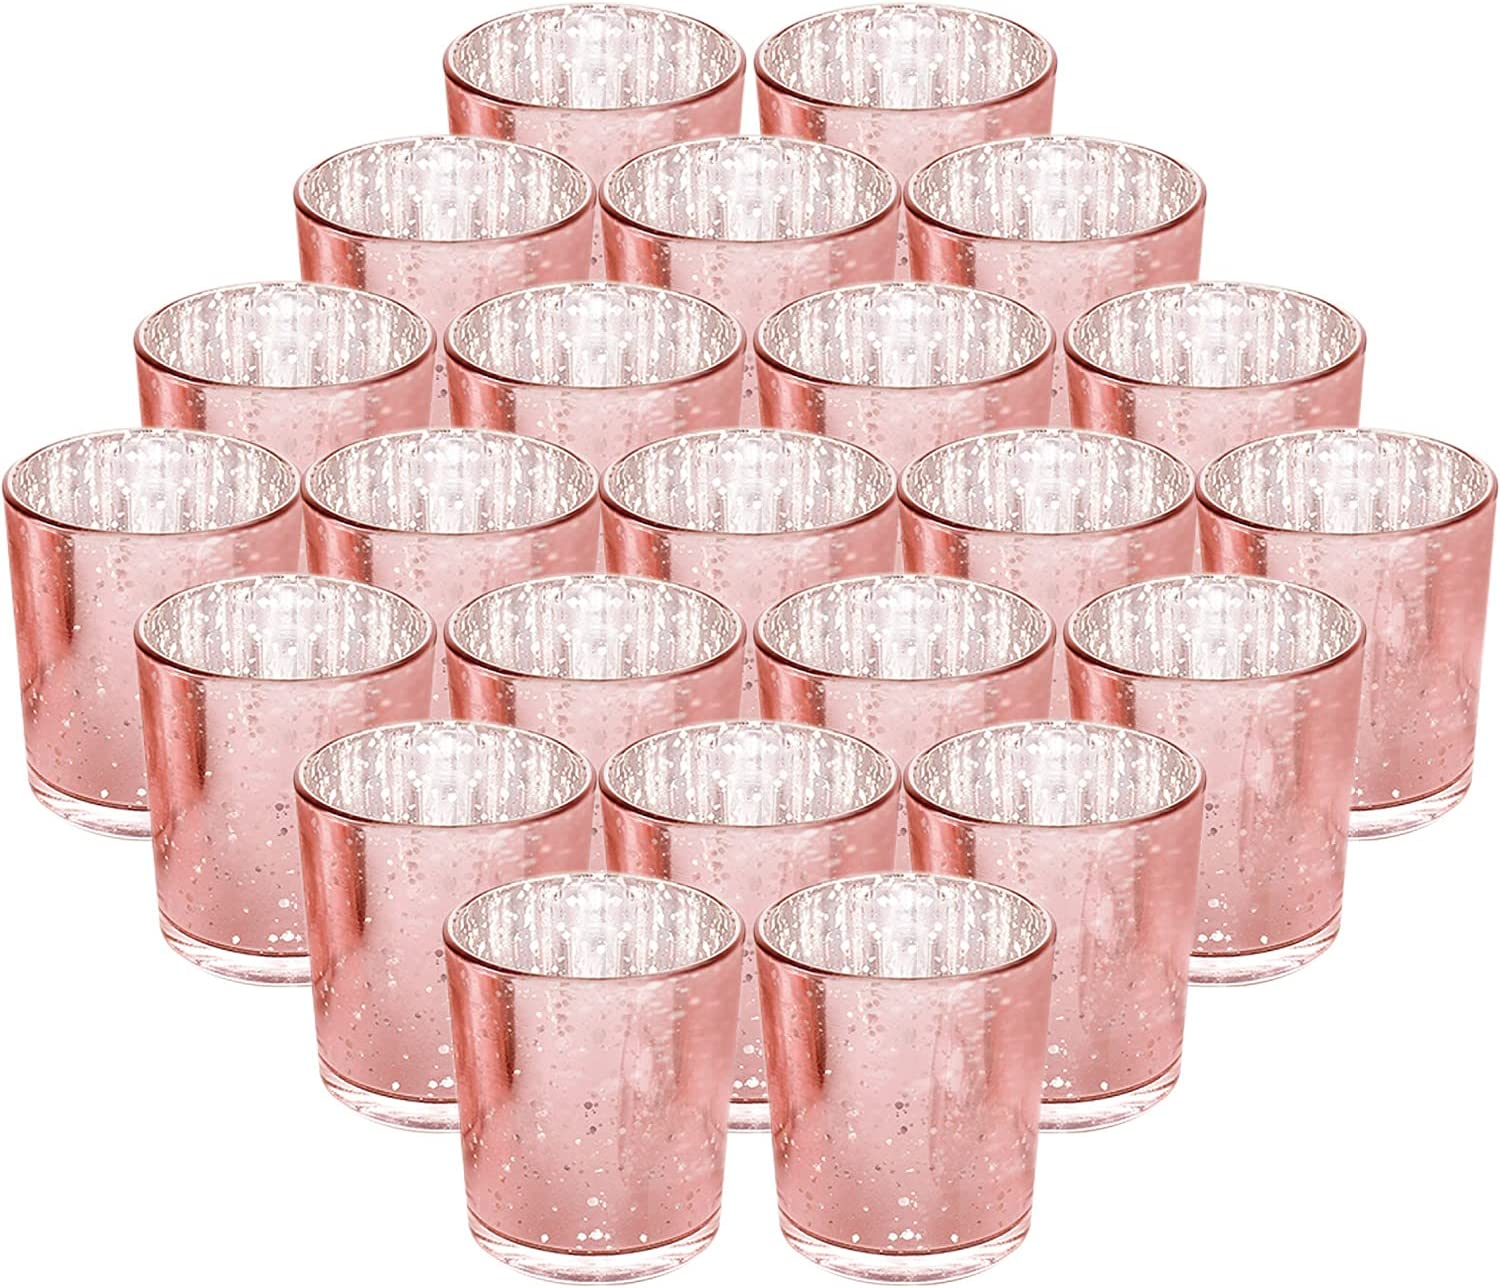 Votive Candle Holder-Set of Challenge the lowest price San Jose Mall Japan 48 for Table M Centerpieces Wedding